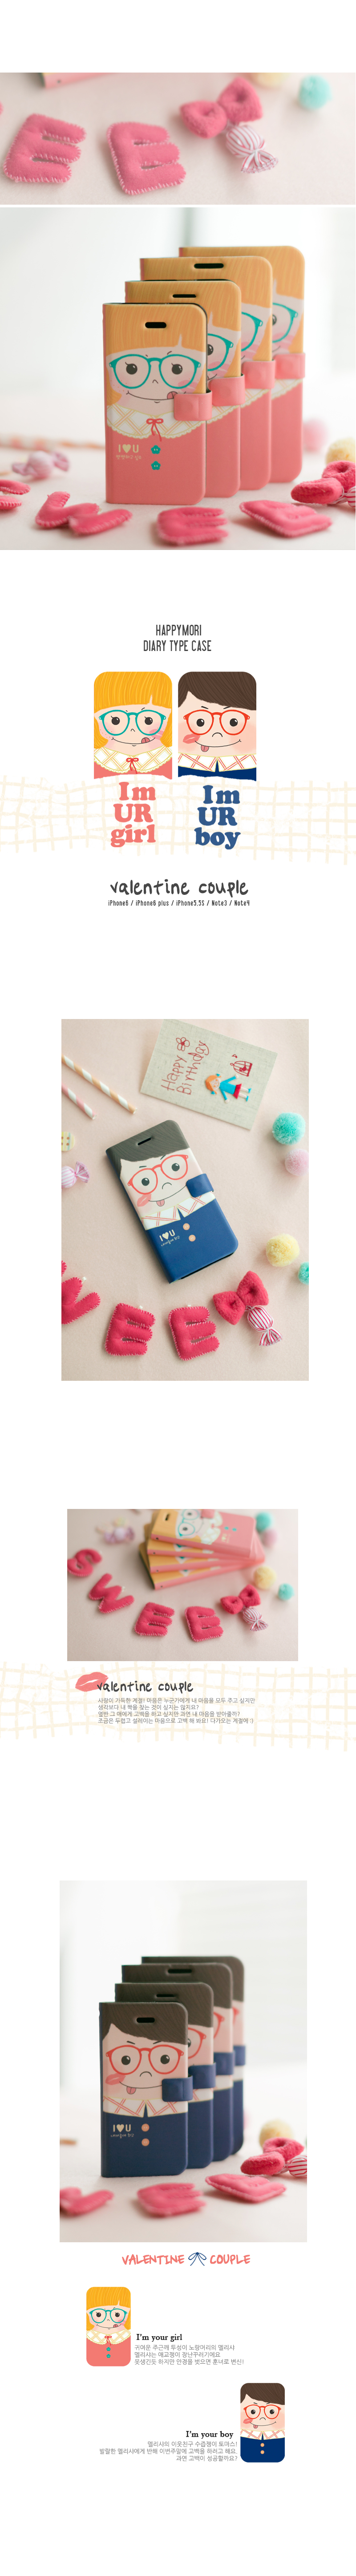 [HAPPYMORI] Flip Cover Case _ Valentine Couple(iPhone6Plus,iPhone6Plus_s,Galaxy Note4,Galaxy Note3,Galaxy Note2,Galaxy S6Edge,Galaxy S6,Galaxy S4,Galaxy S3 3g,Galaxy S3 Lte)